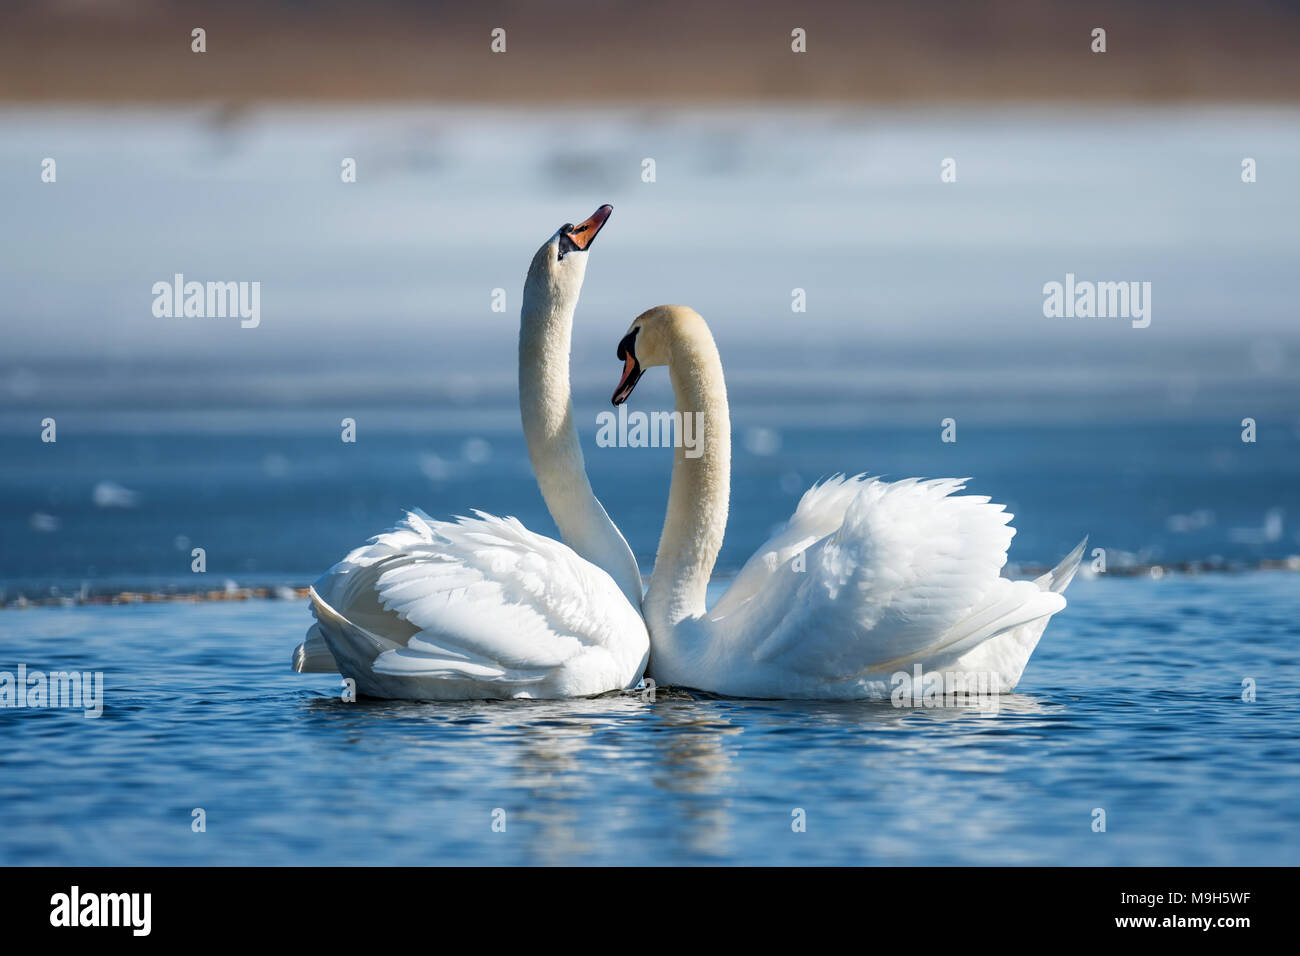 Romantic couple of swans on the lake. Swan reflection in water - Stock Image